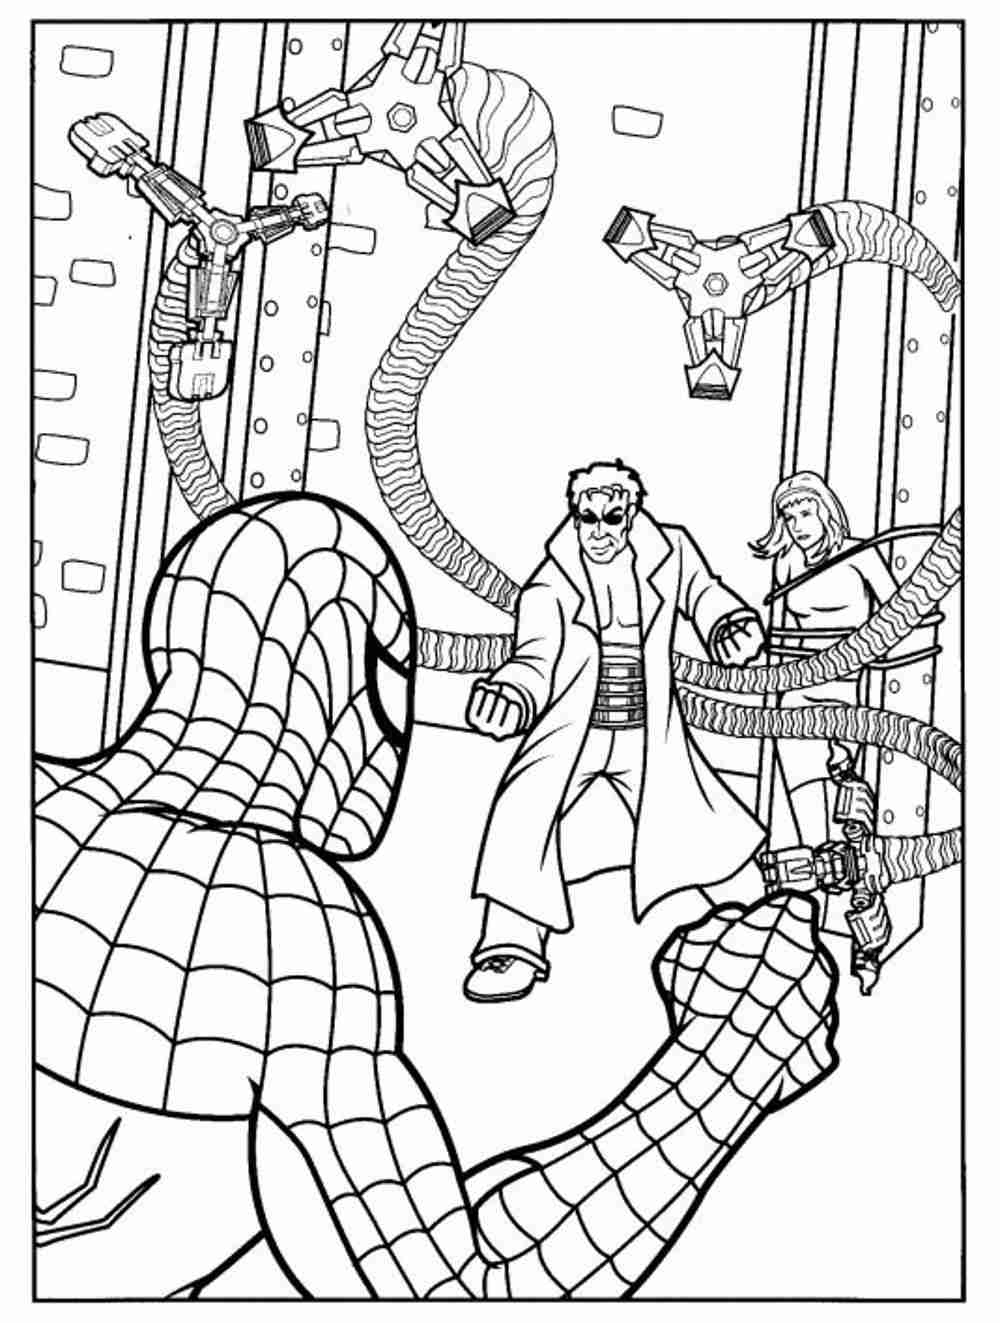 coloring sheet spiderman coloring pages coloring pages spiderman free printable coloring pages pages spiderman coloring coloring sheet